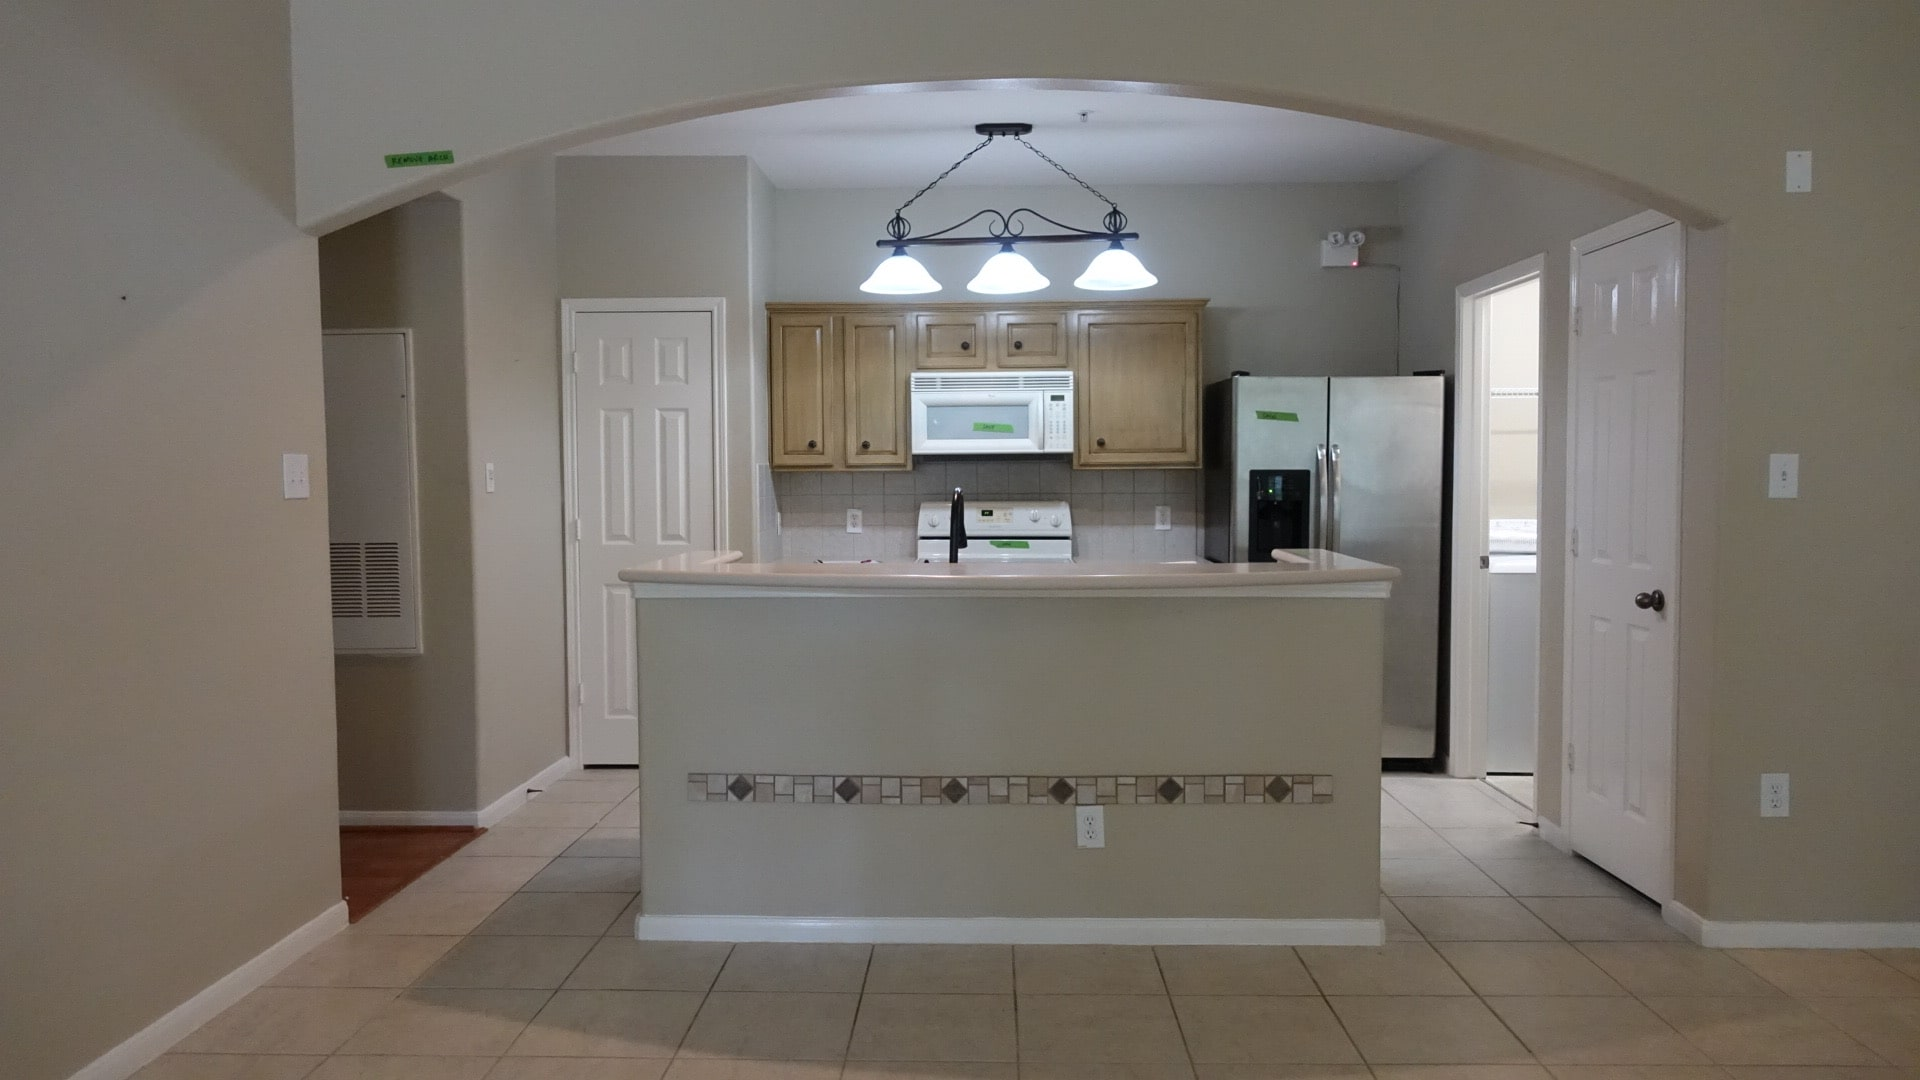 Before Picture of Condo Kitchen Remodel